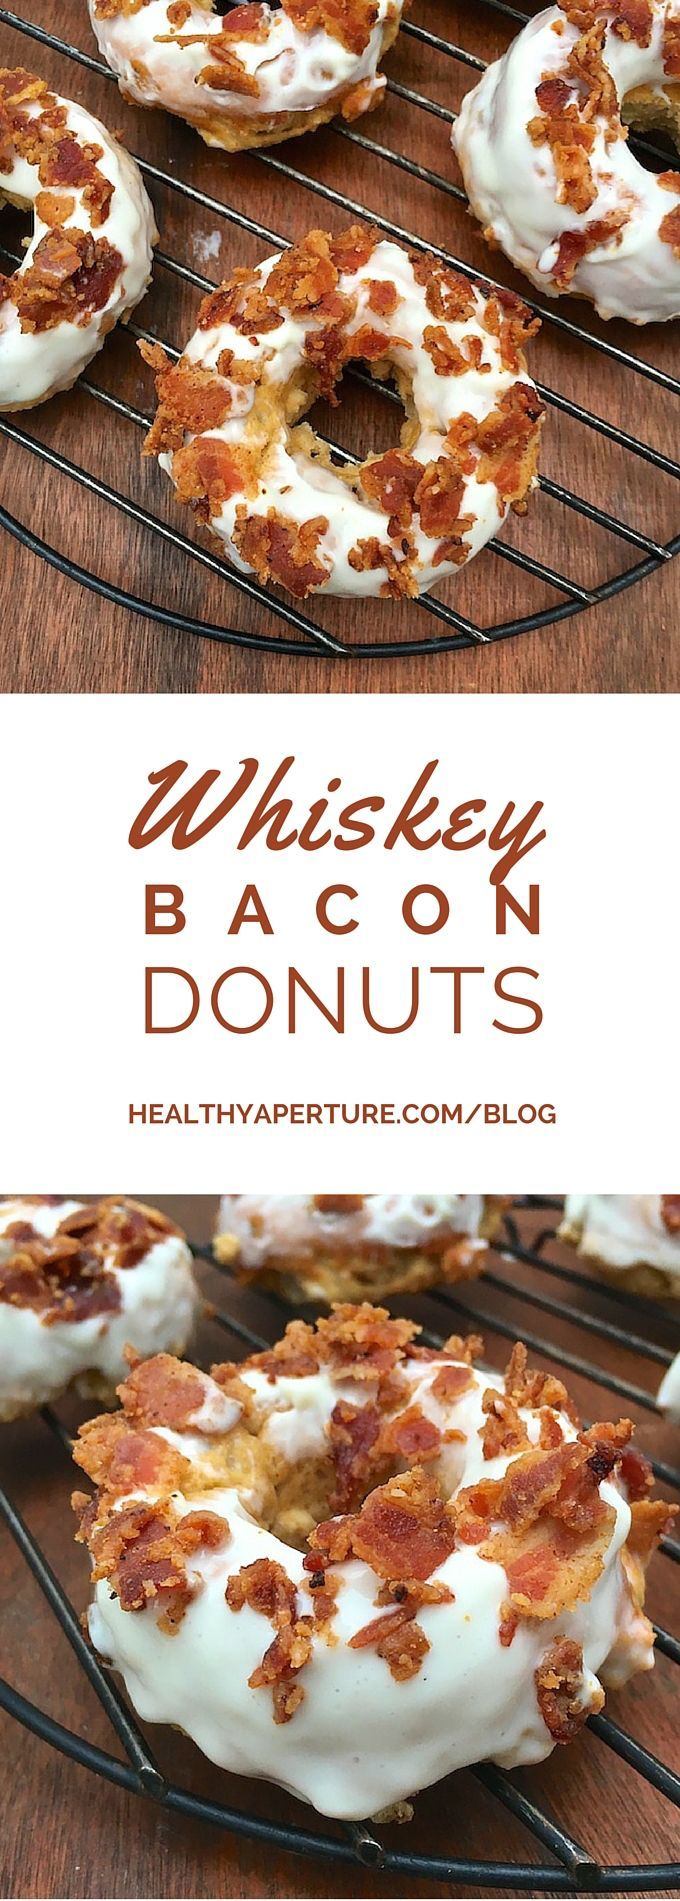 Get in the Irish spirit with whiskey flavored baked donuts, the perfect sweet treat for your party guests.